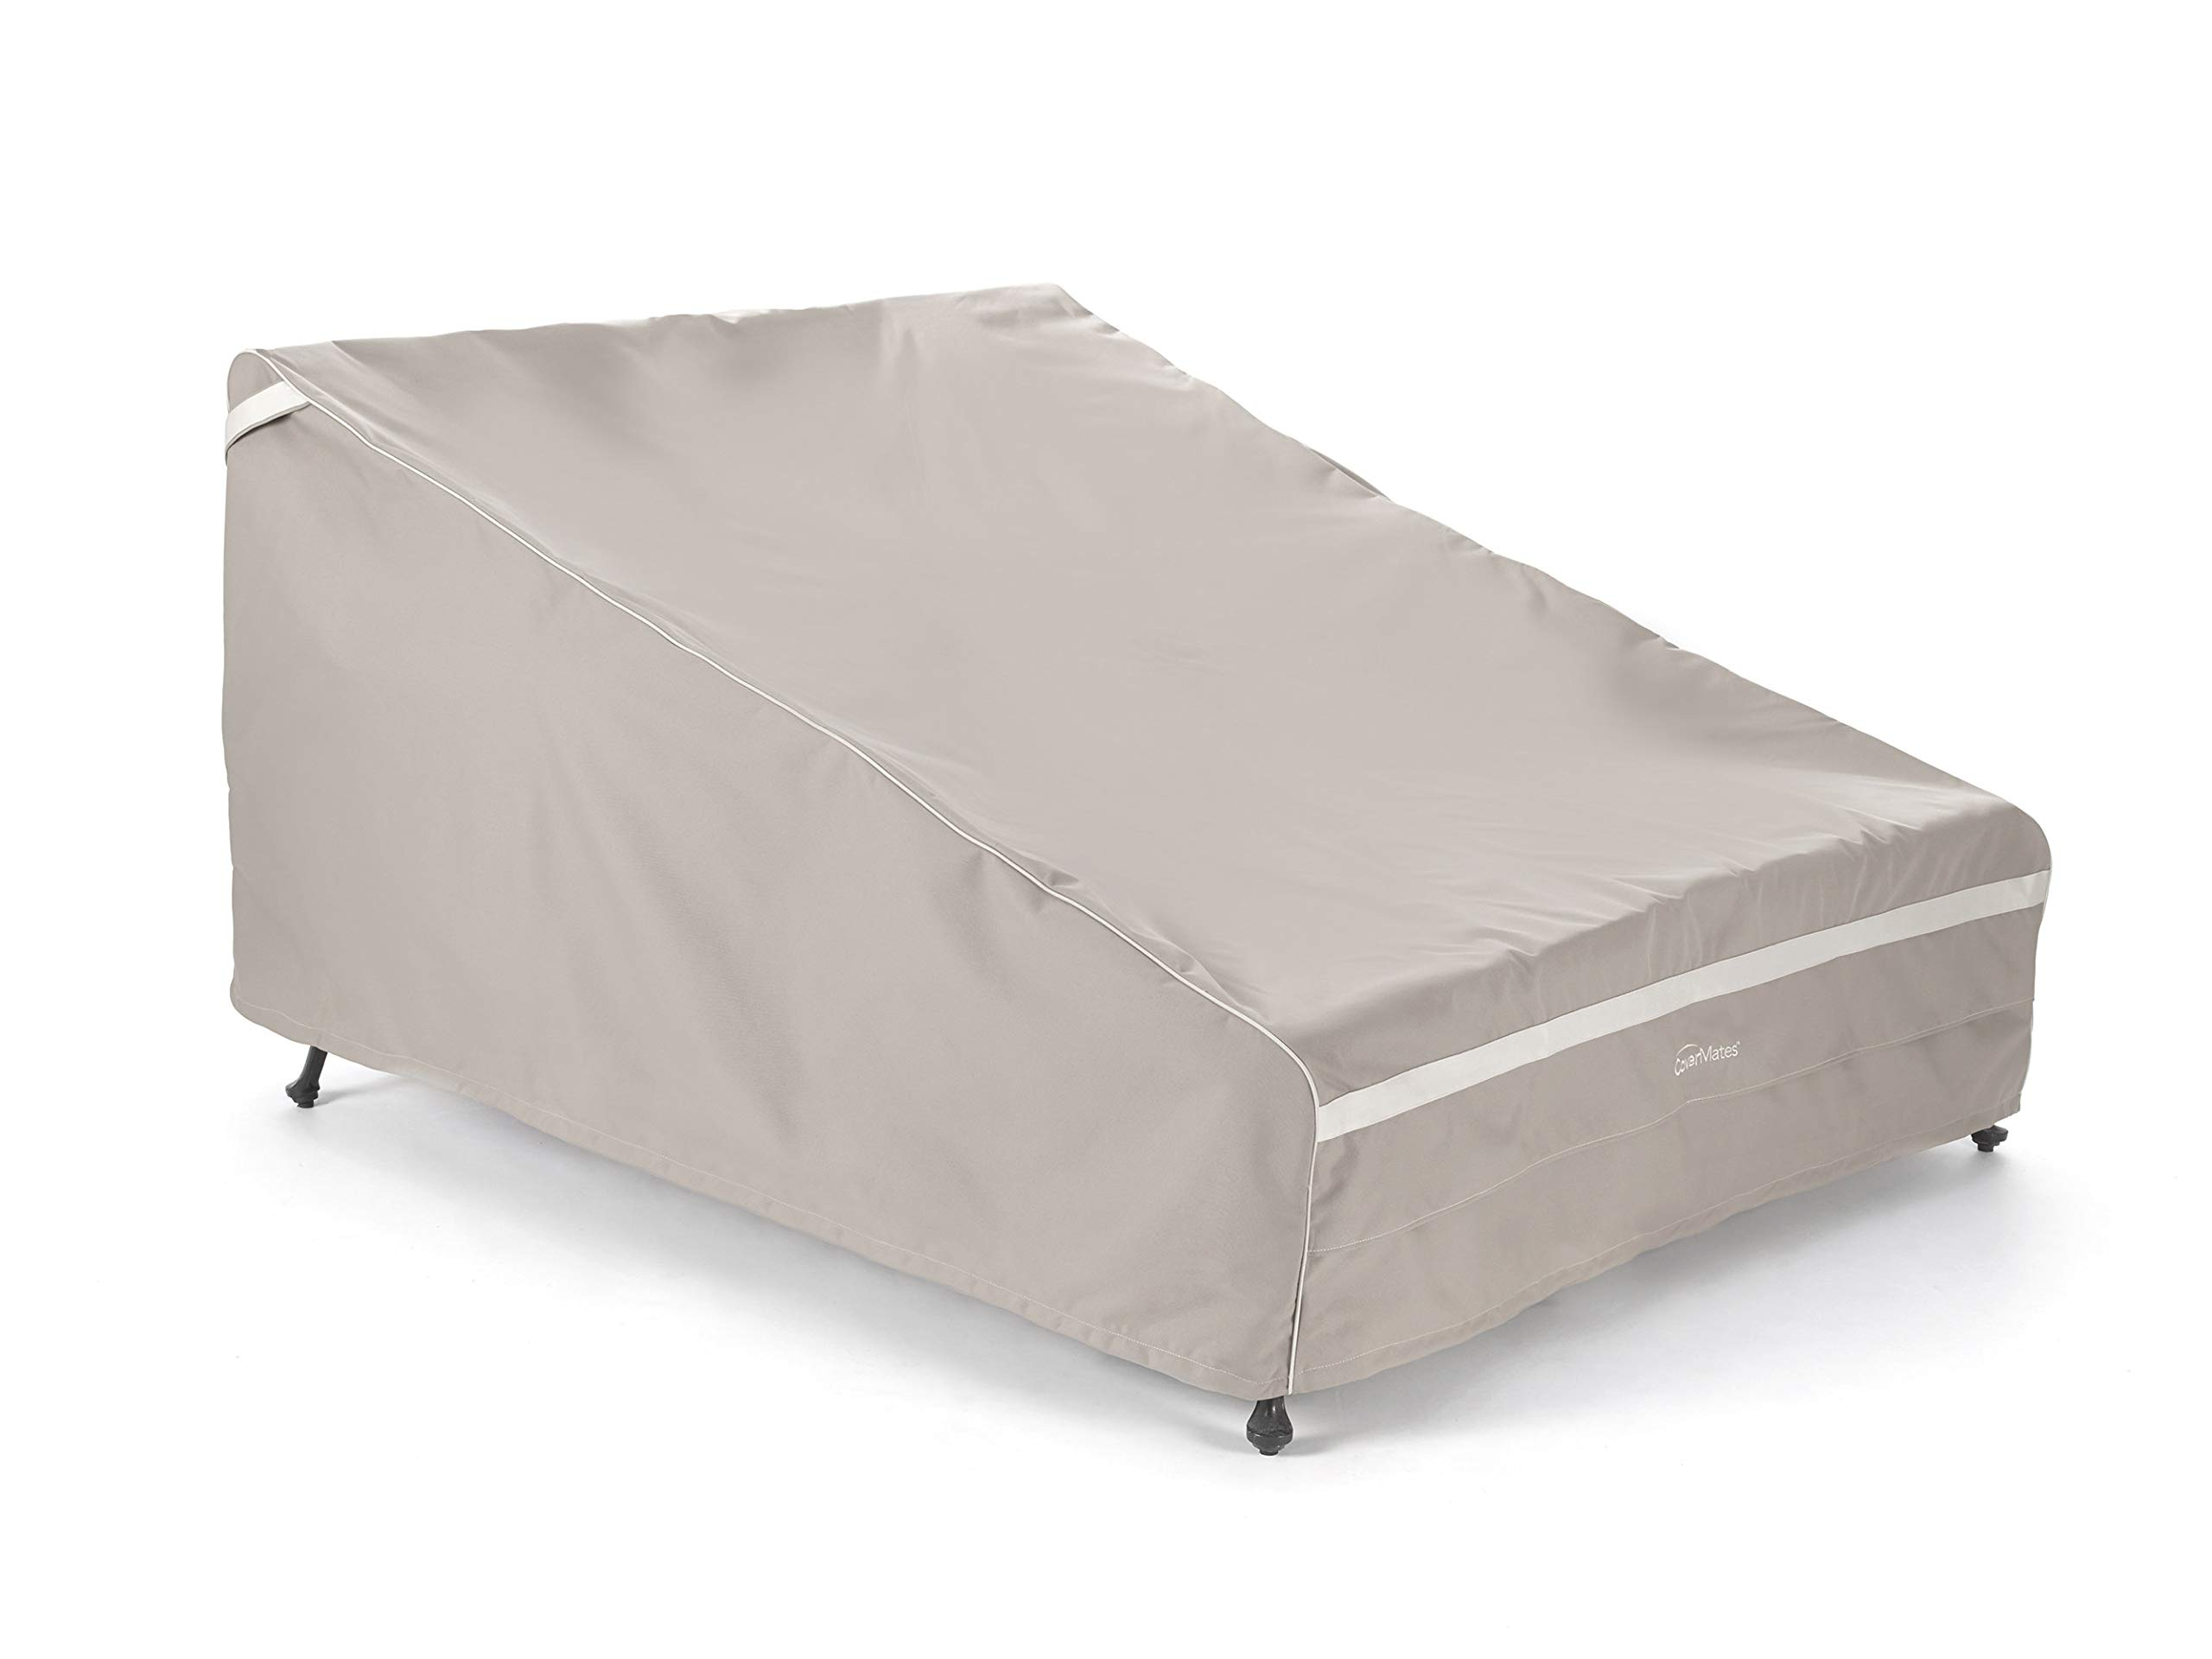 Covermates – Double Chaise Lounge Covers – 66W x 89D x 38H – Prestige Collection – 7 YR Warranty – Year Around Protection - Clay